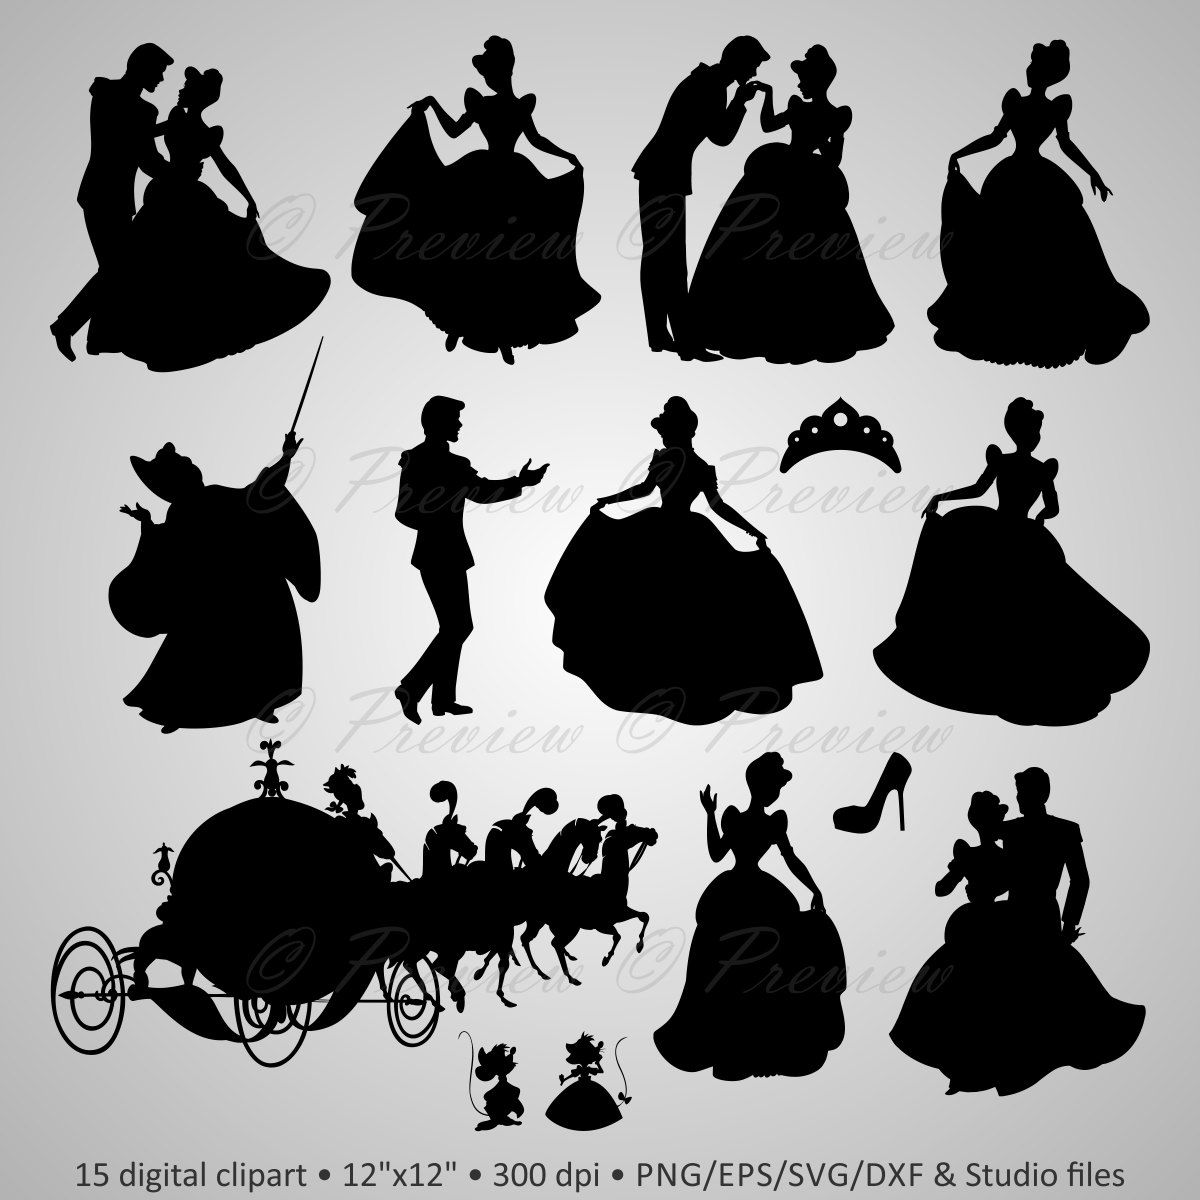 Buy 2 Get 1 Free Digital Clipart Silhouettes Cinderella crown